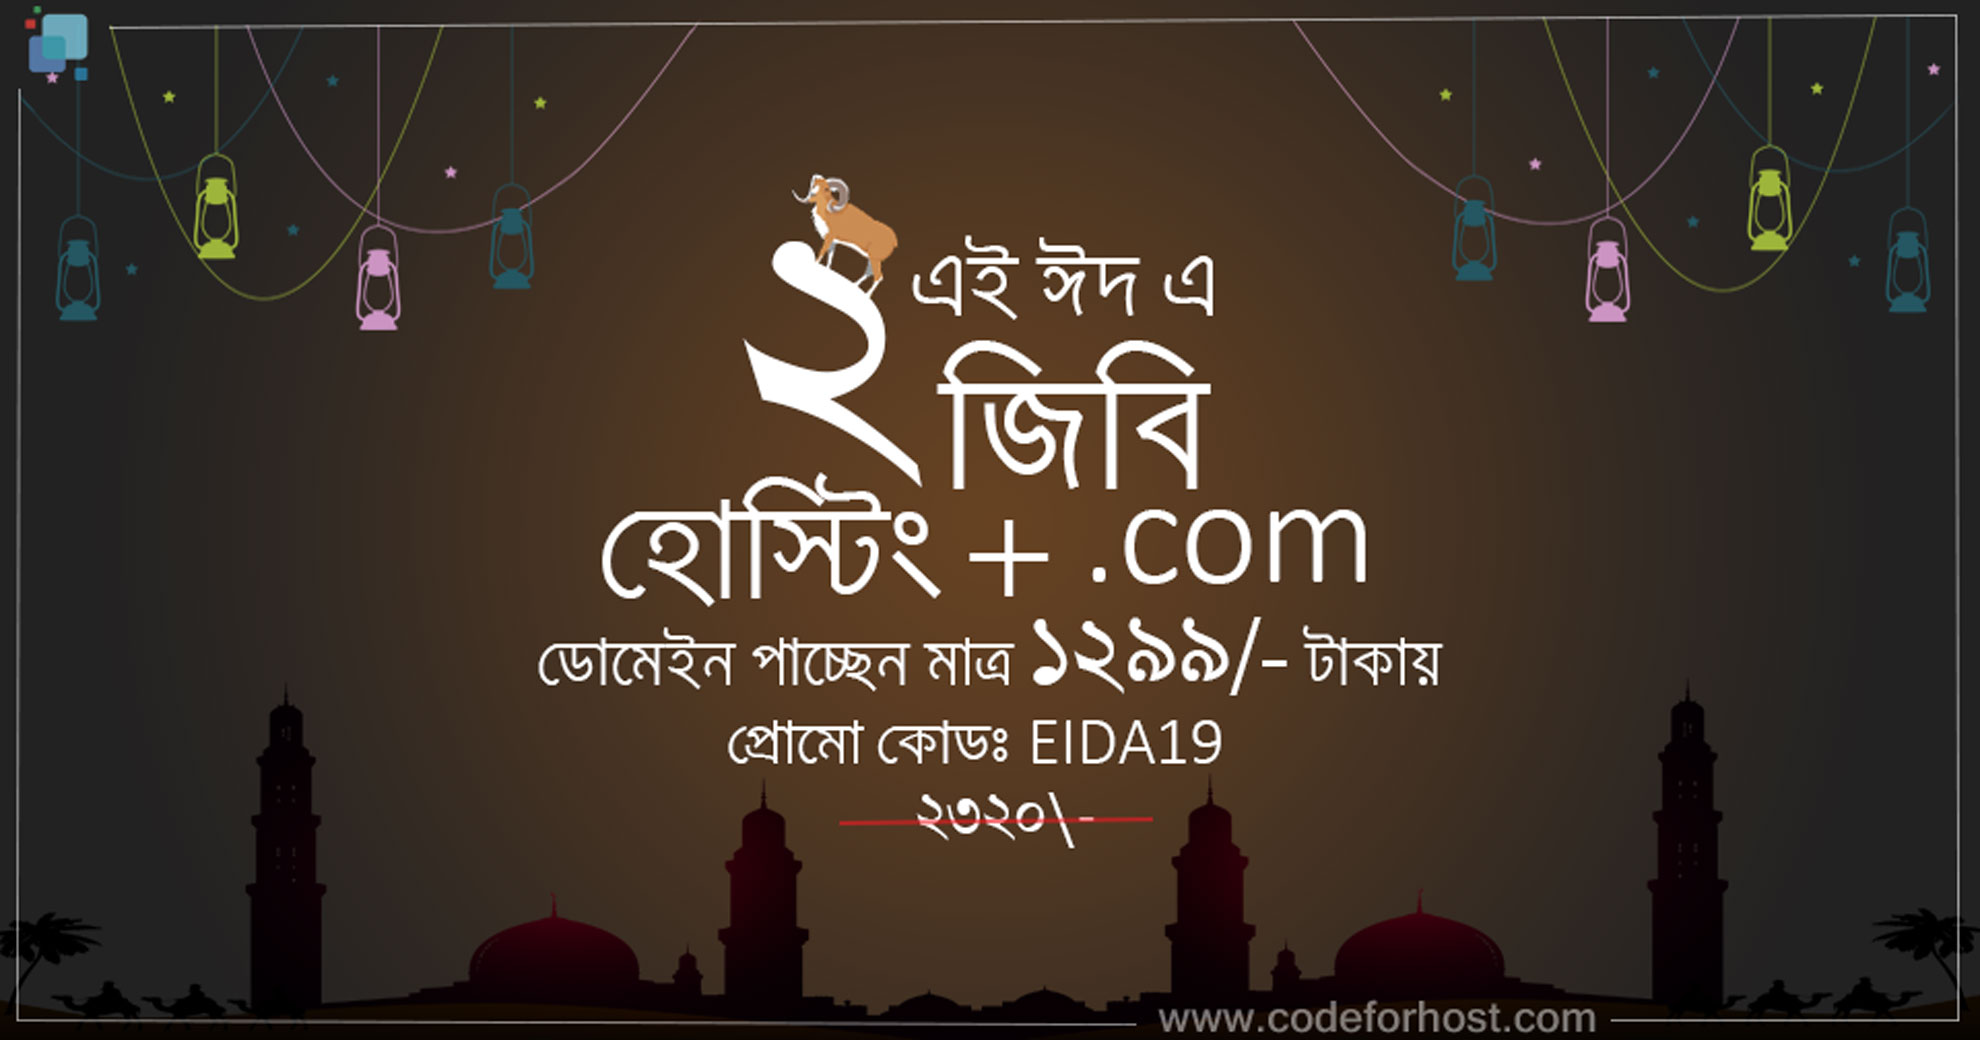 1 Best Domain and Web Hosting Provider in Bangladesh 2019s